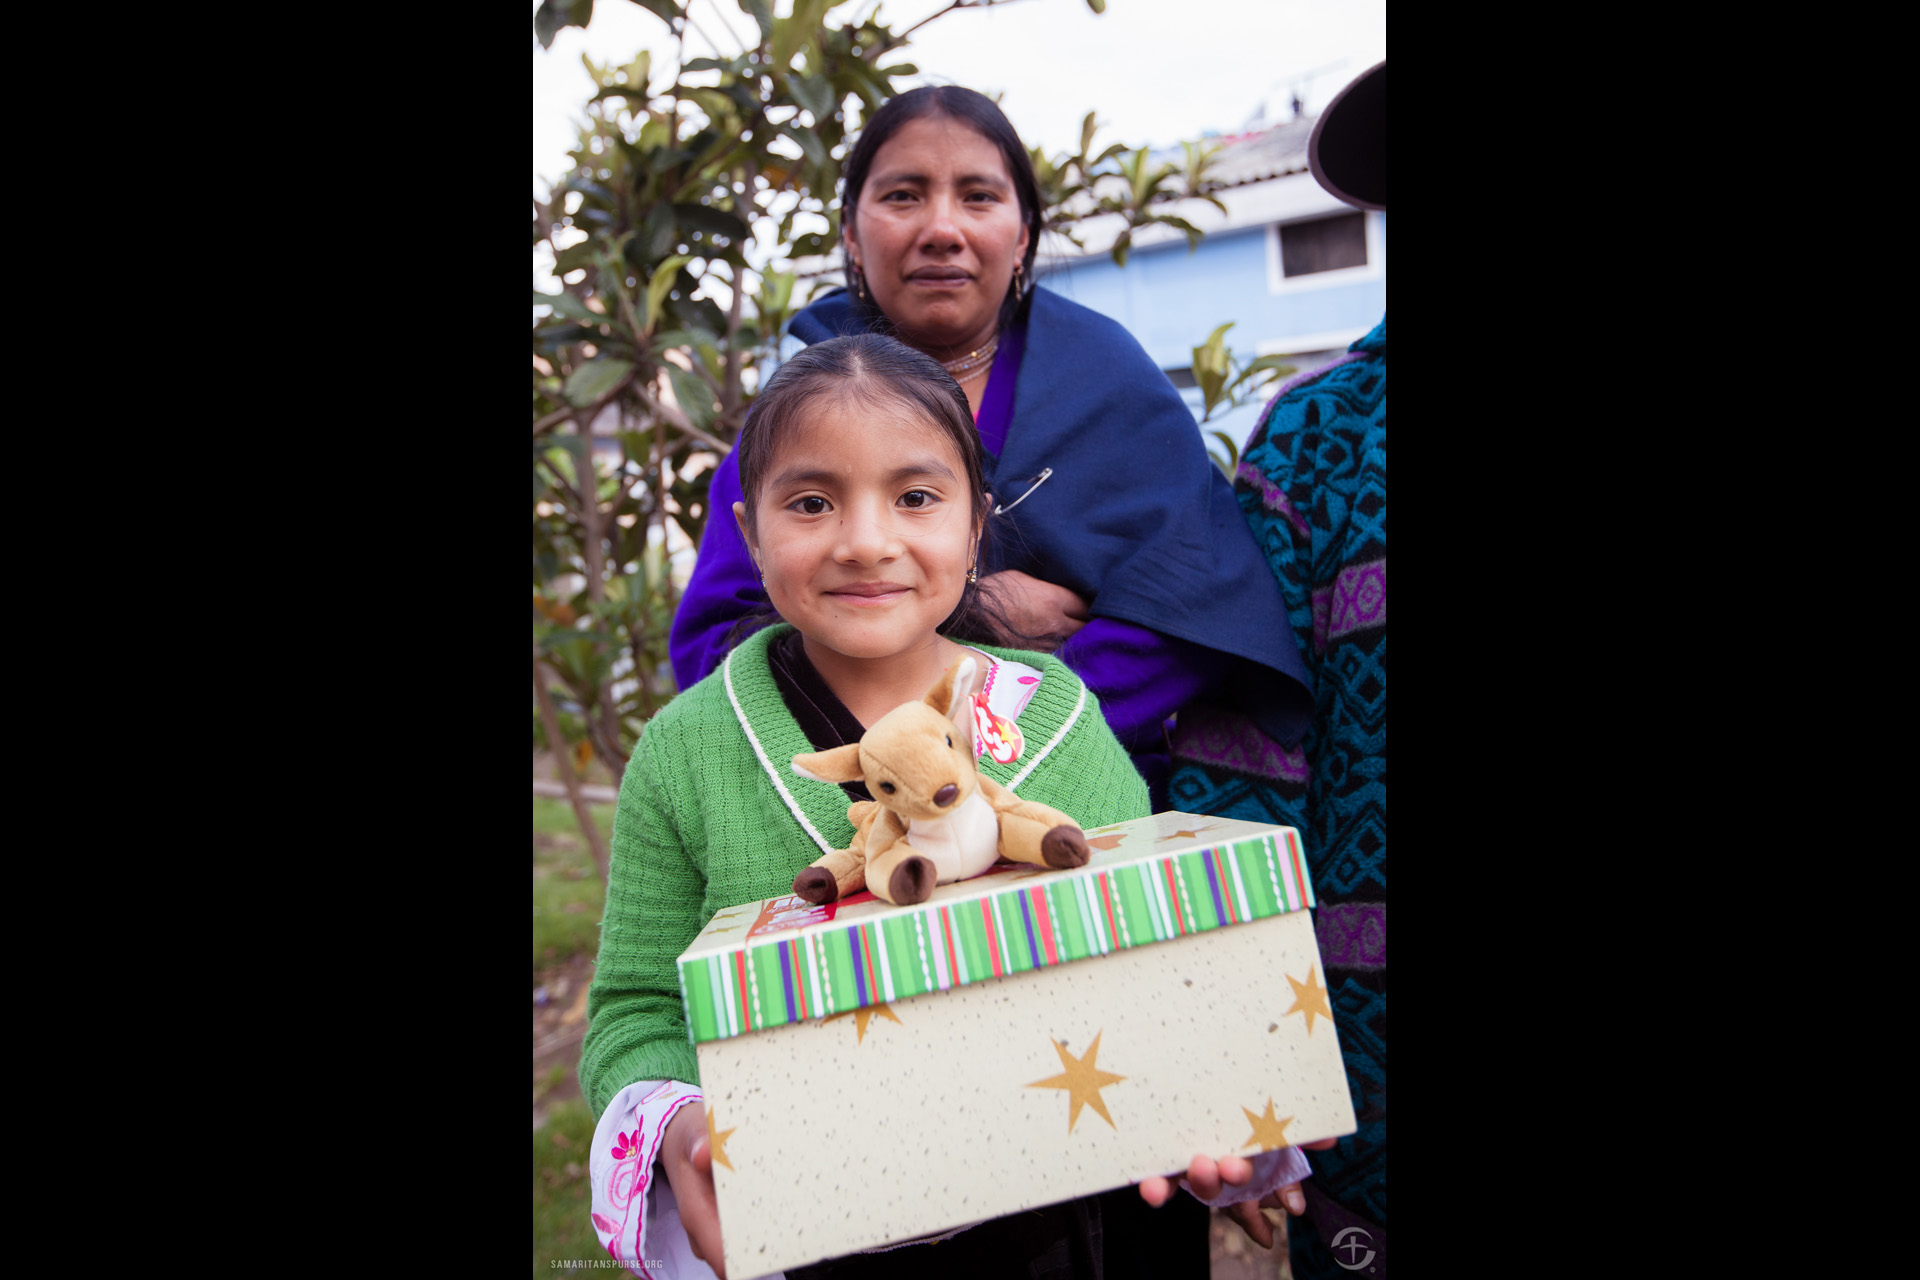 The shoe box gifts, lovingly packed by people in the U.S. and other countries, bring joy wherever they are delivered.